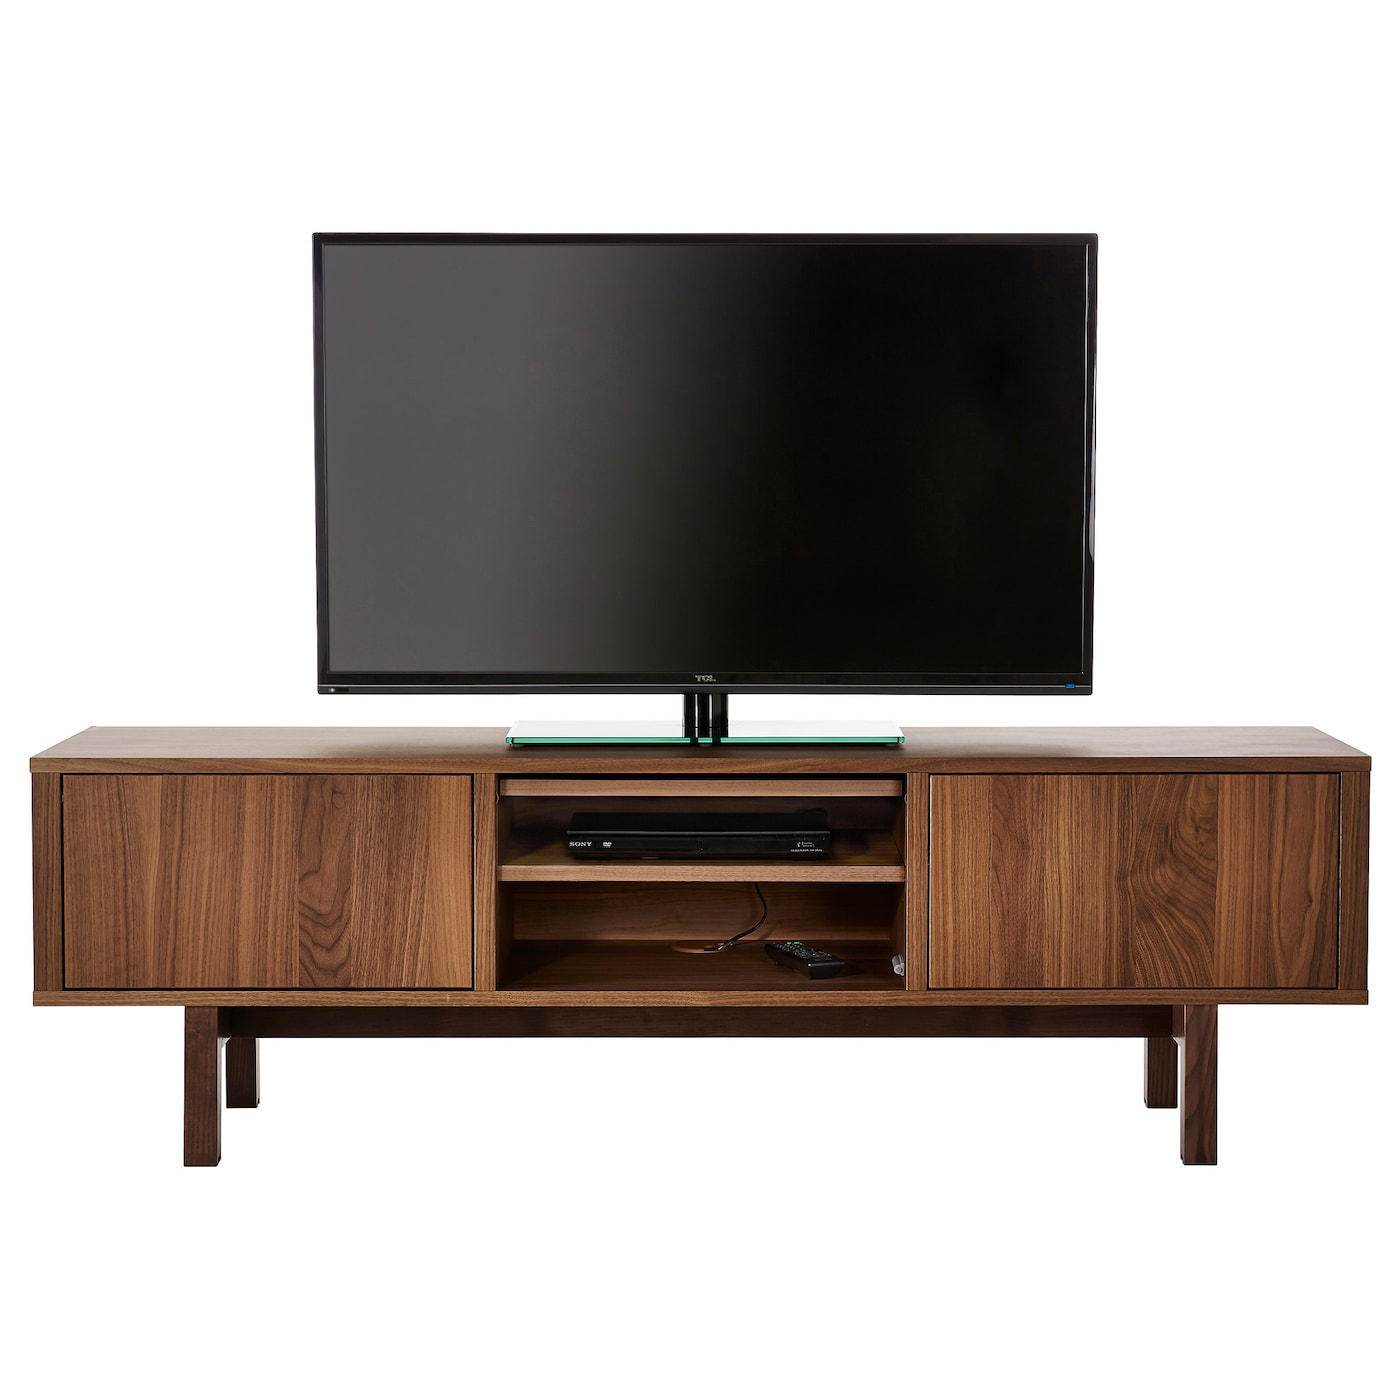 STOCKHOLM TV bench Walnut veneer 160x40 cm - IKEA